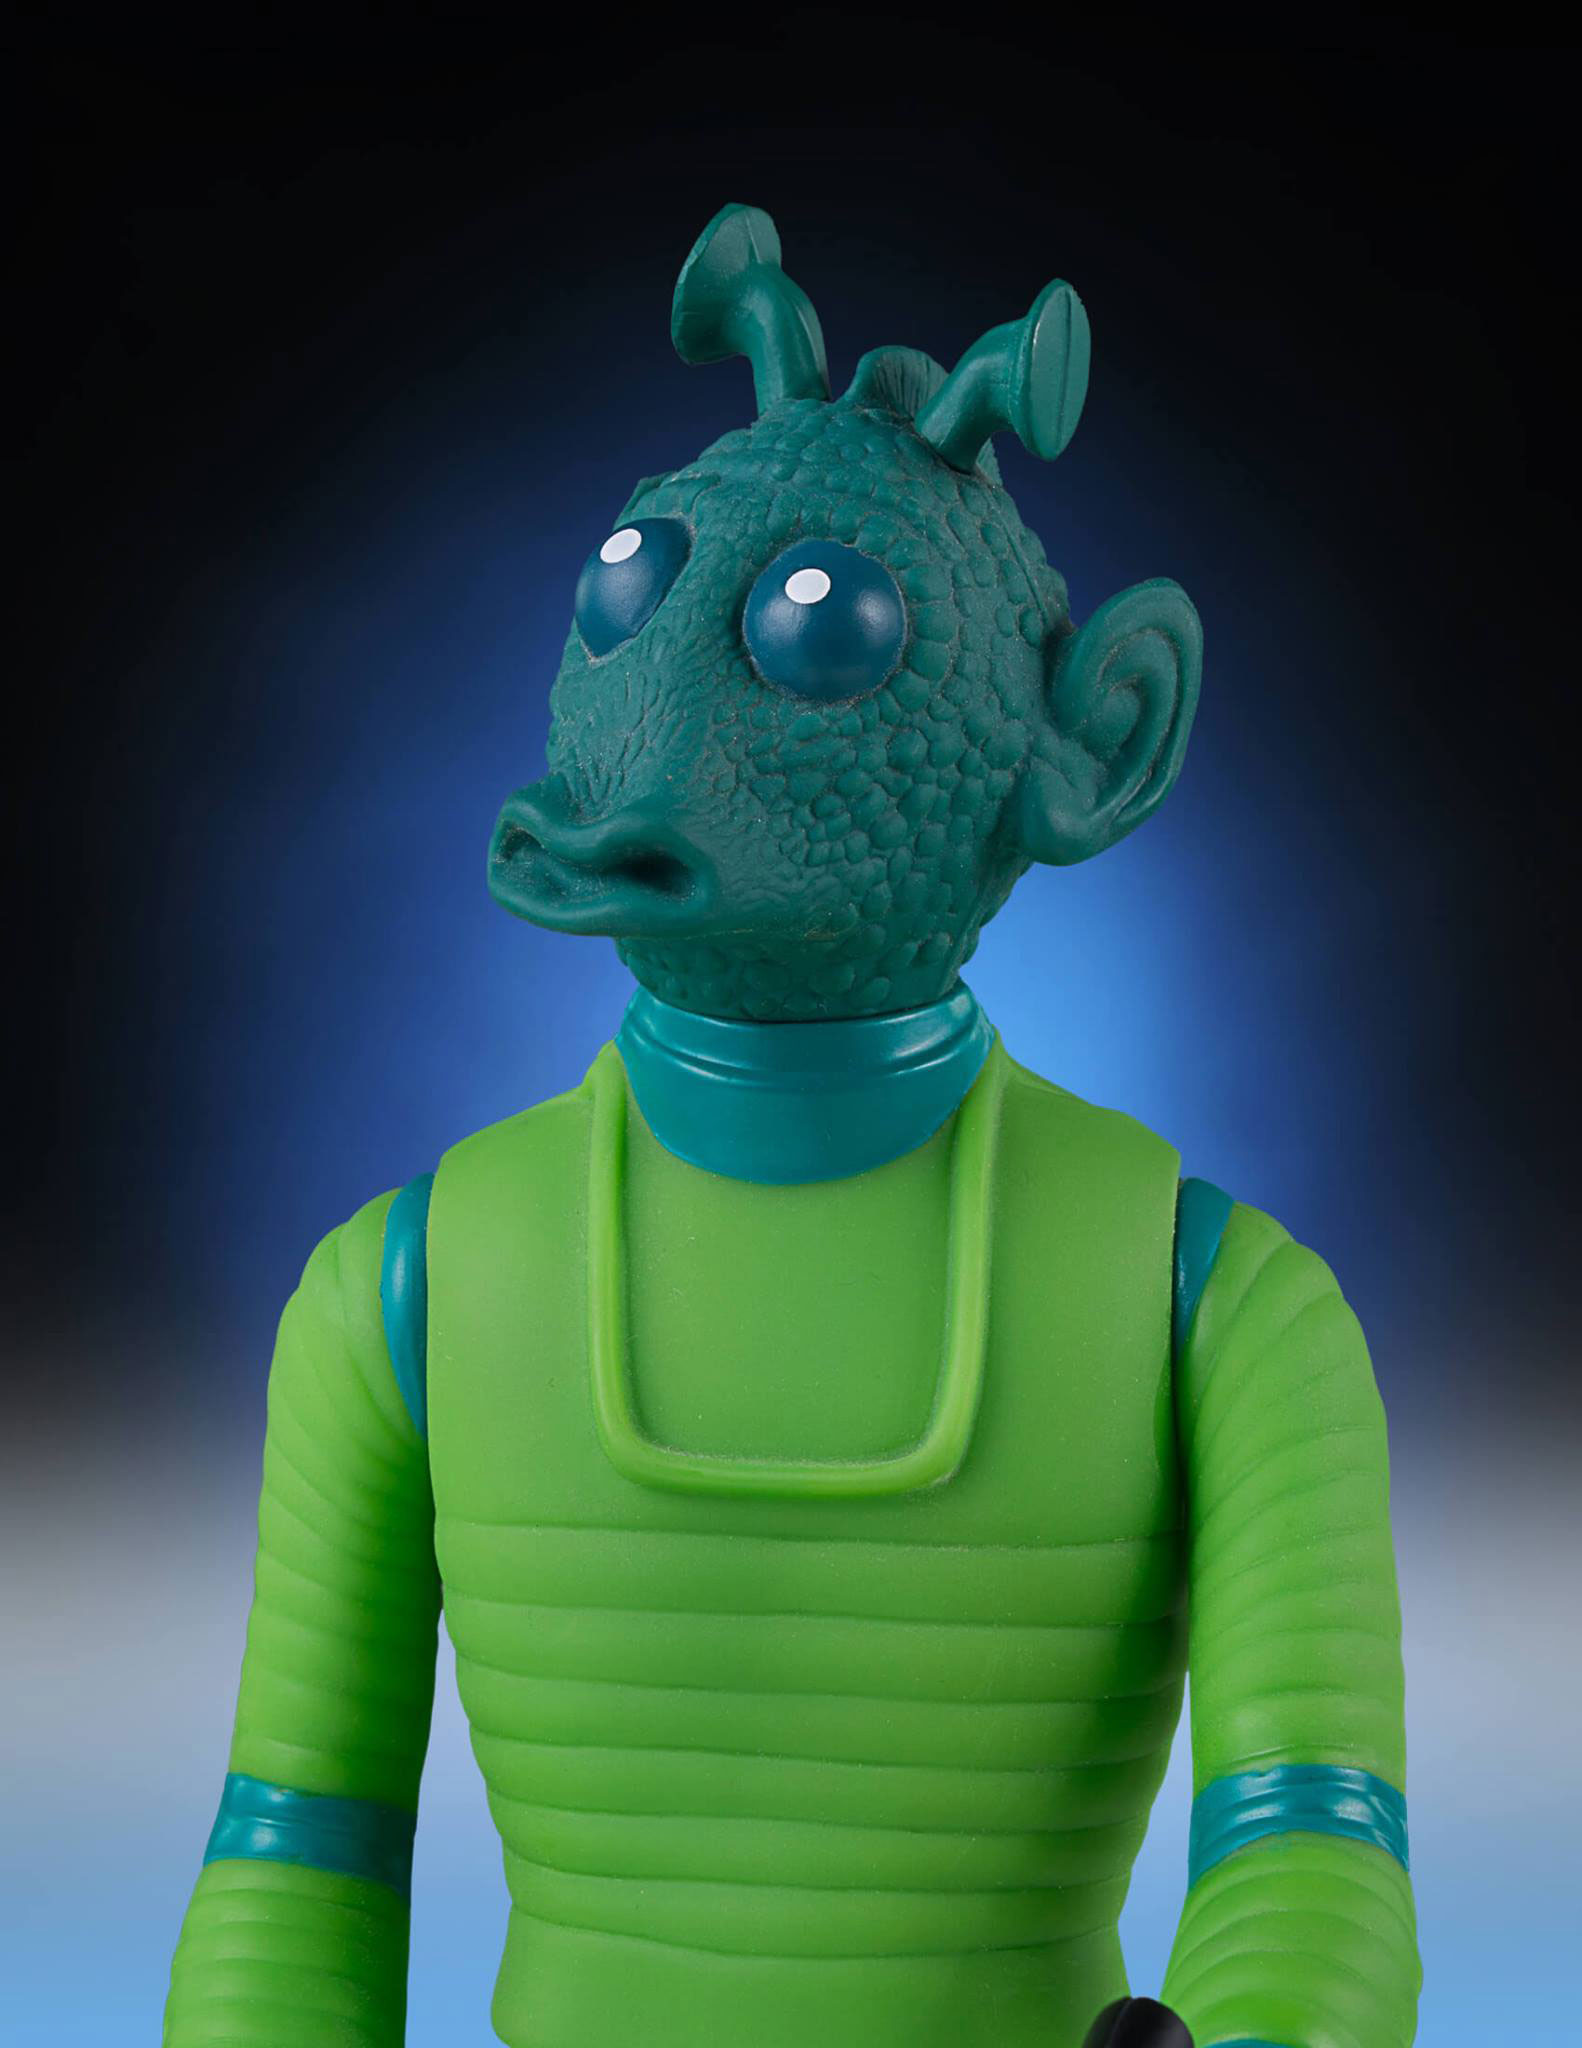 star-wars-greedo-potf-jumbo-figure-gentle-giant-3